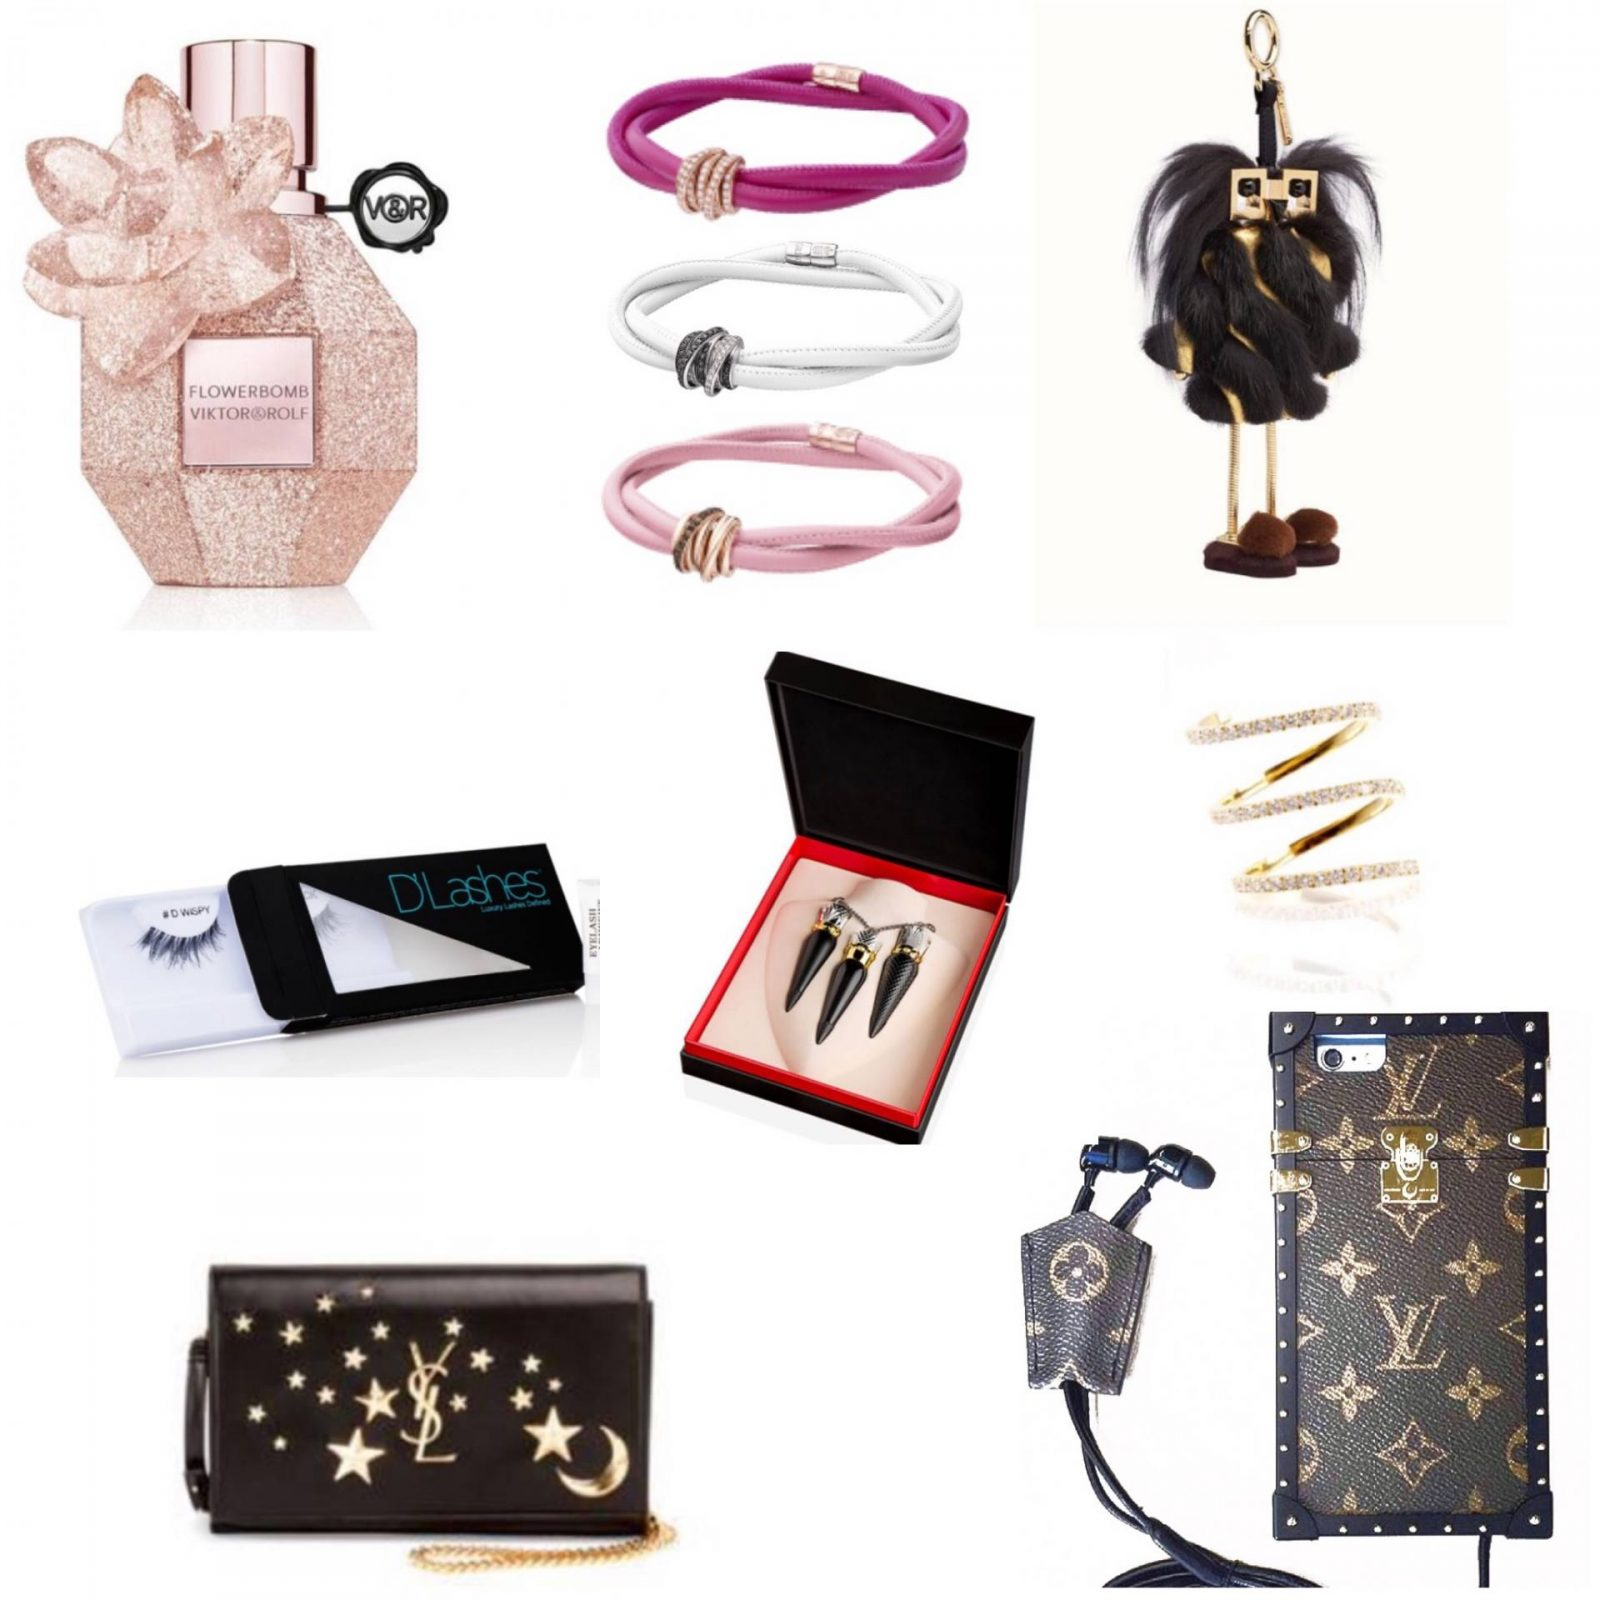 Luxury Stocking Stuffer Ideas